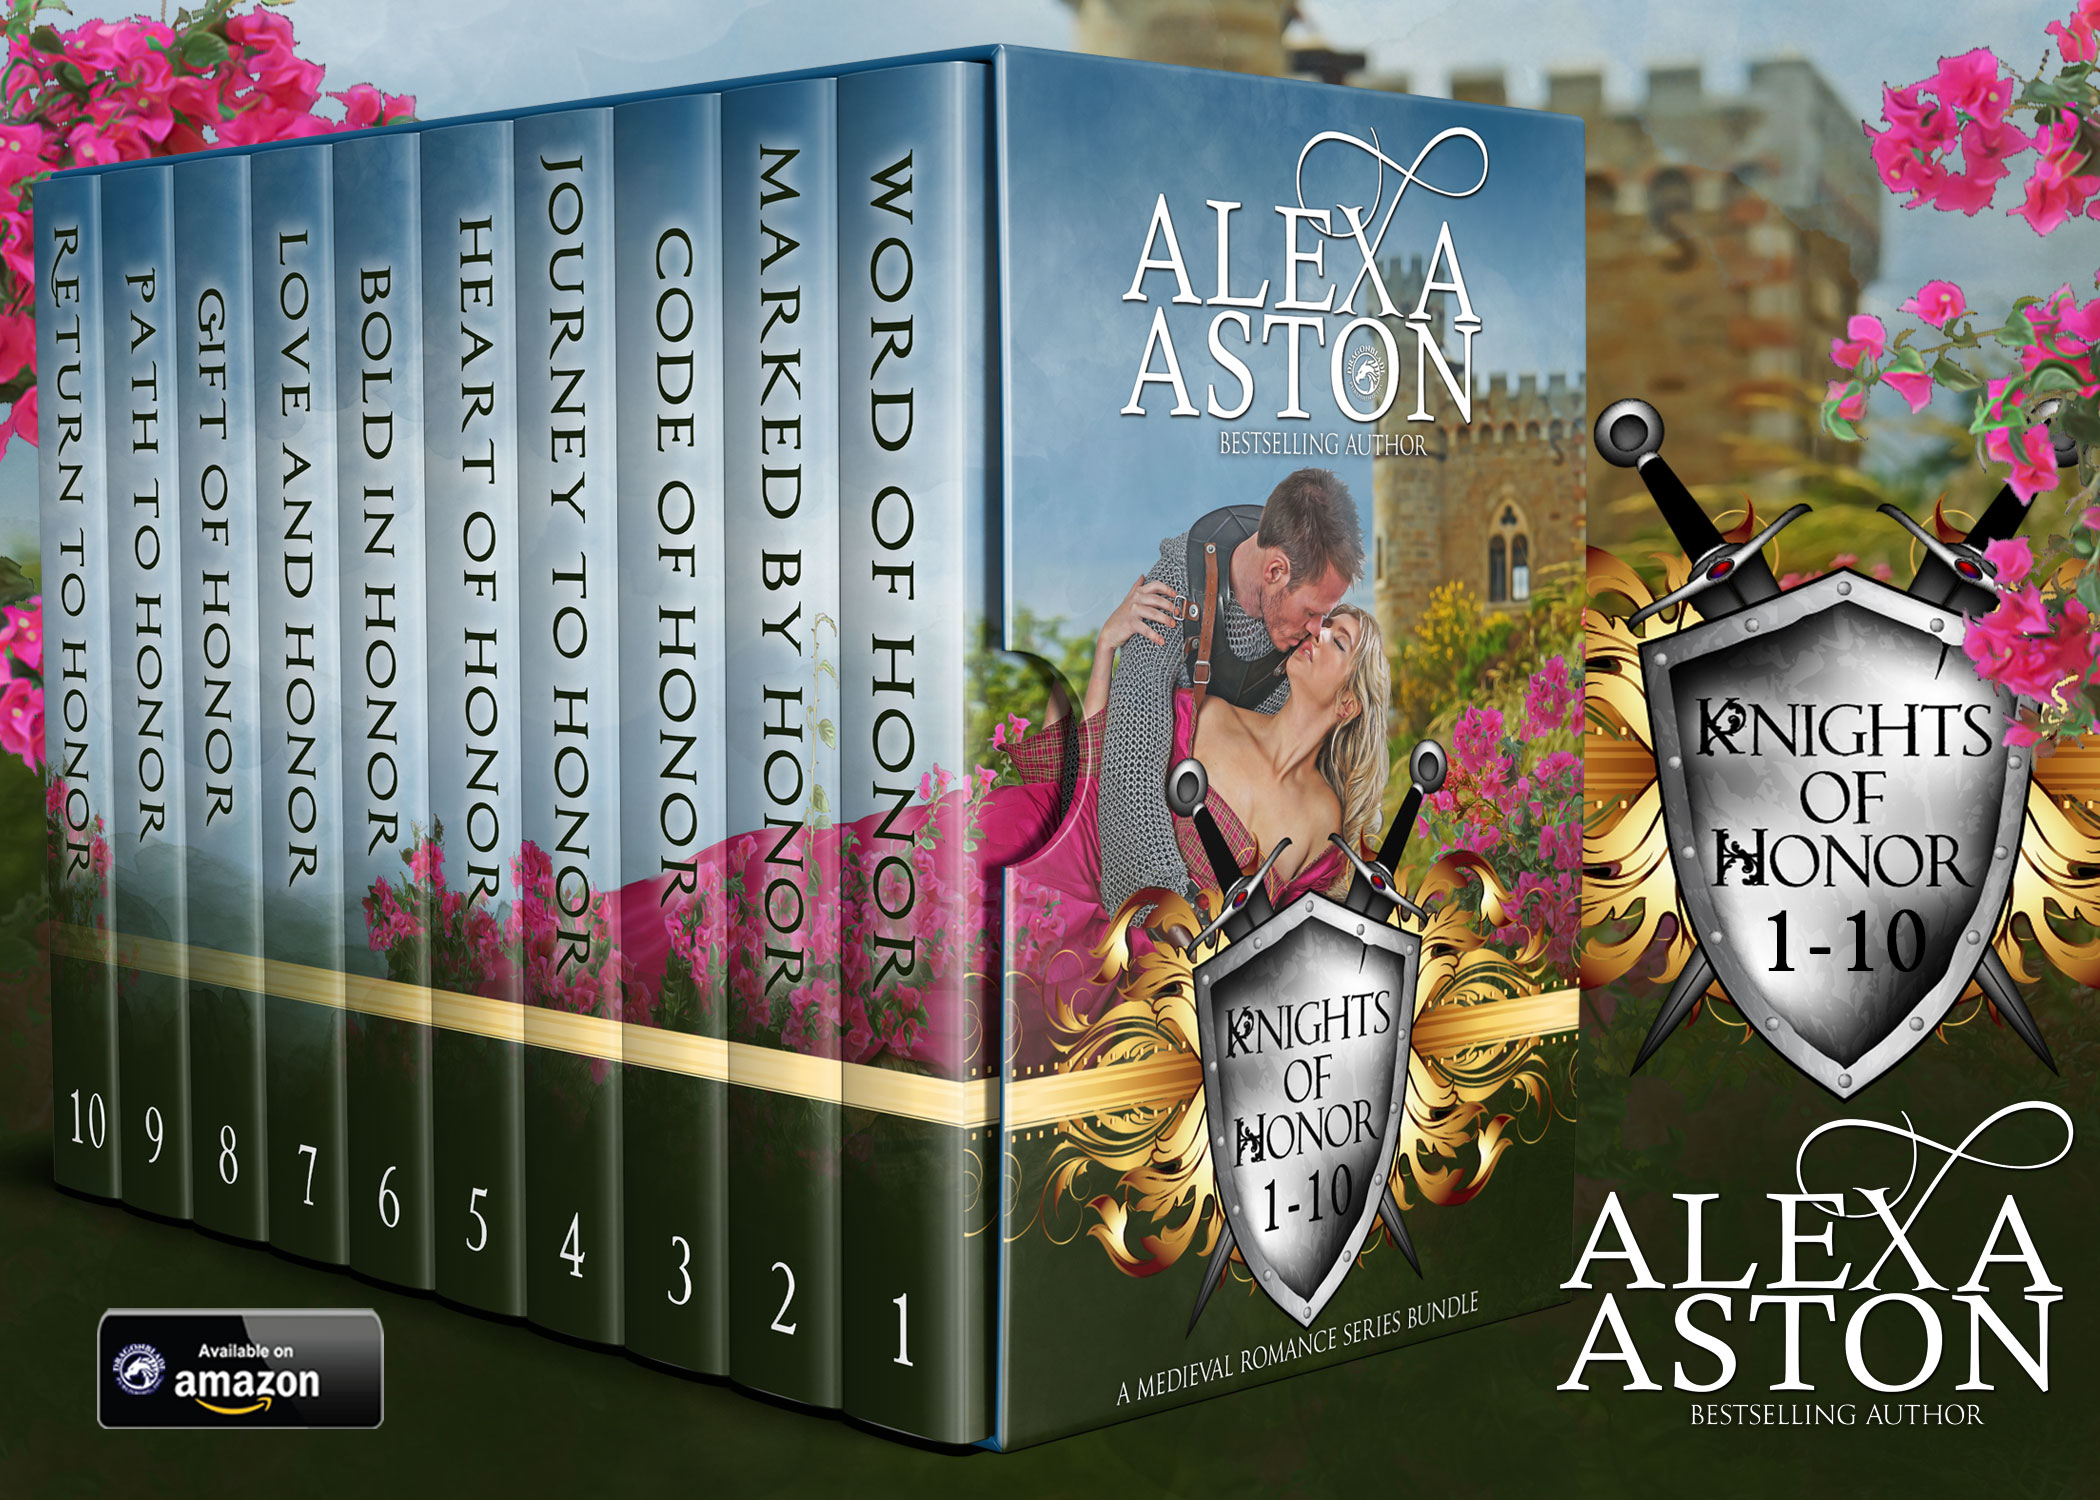 Knights of Honor Books 1-10: A Medieval Romance Series Bundle